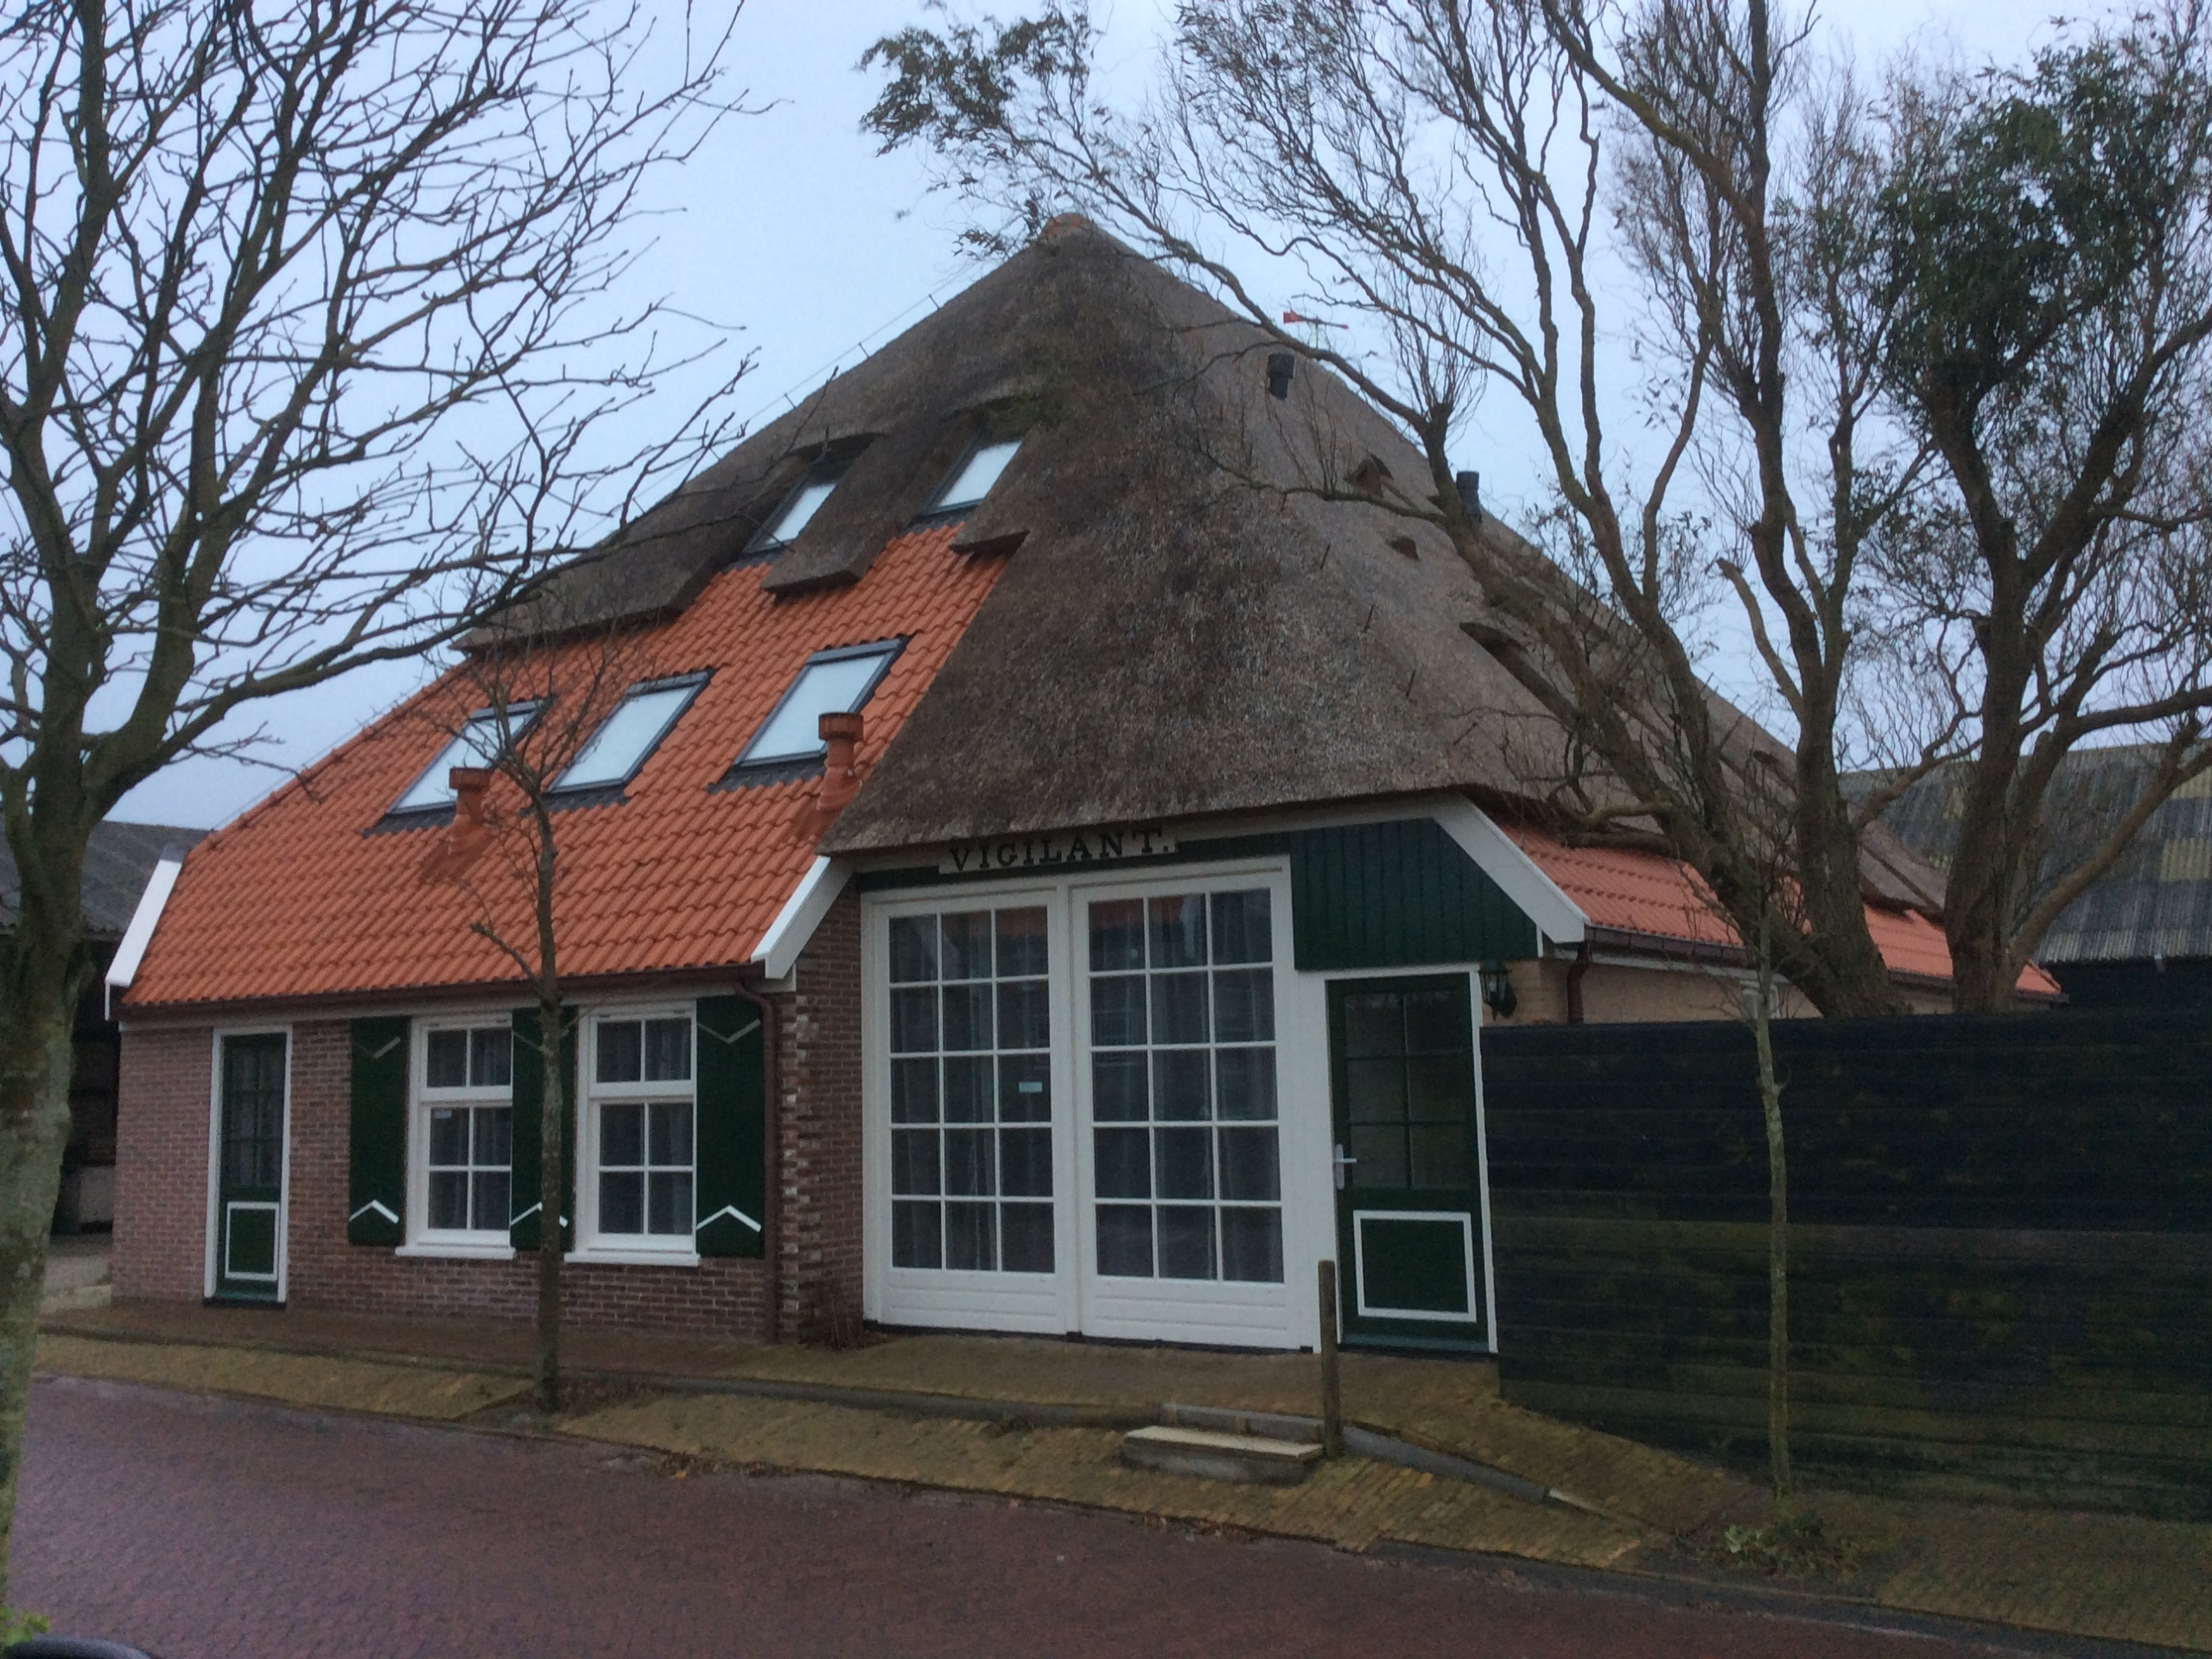 Comfortable holidayhome in the middle of the picturesque Den Hoorn